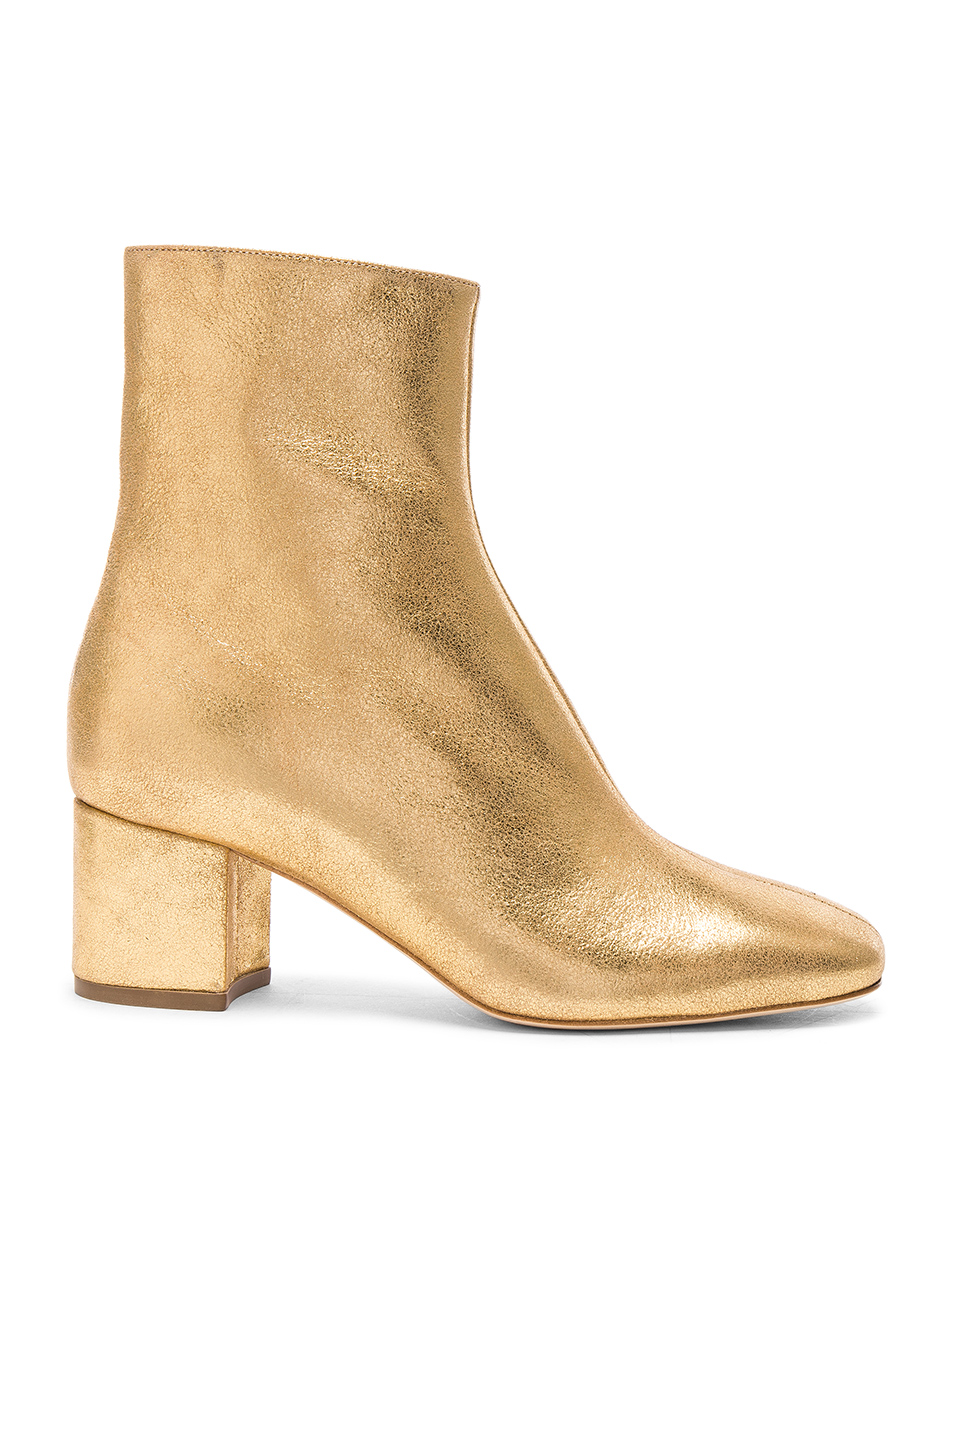 Brother Vellies Leather Kaya Boots in Metallics